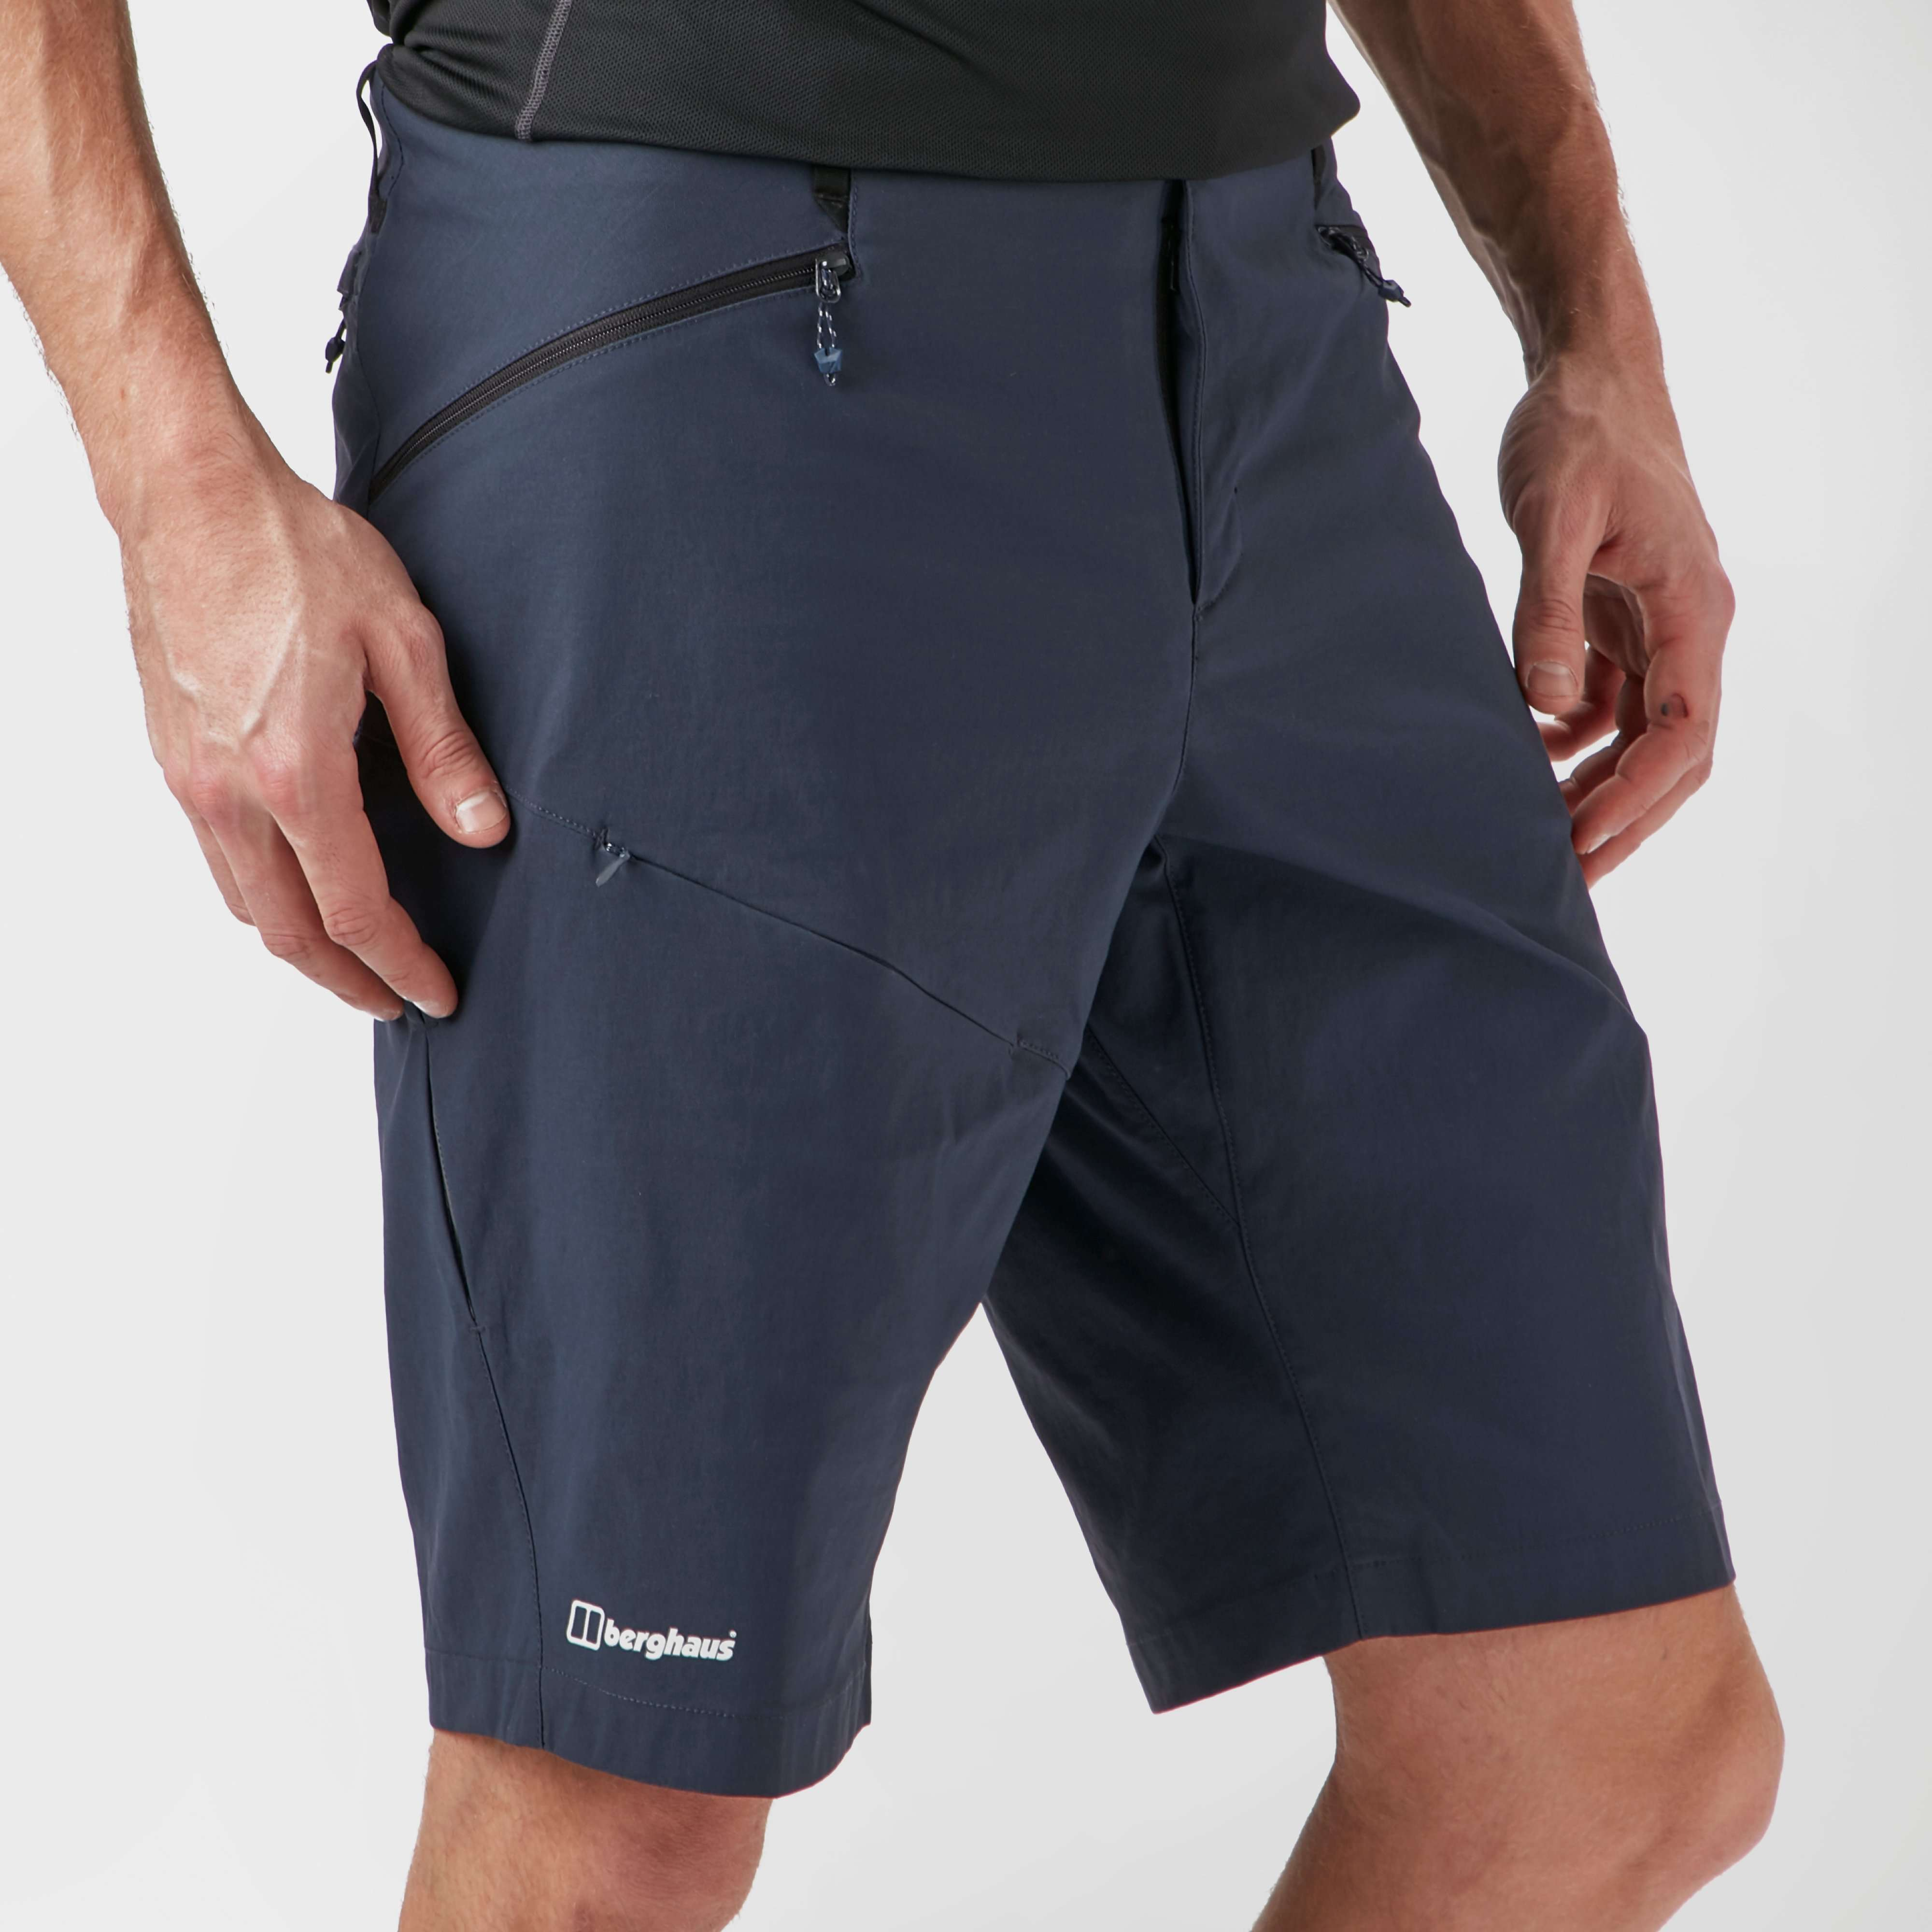 BERGHAUS Men's Baggy Light Shorts